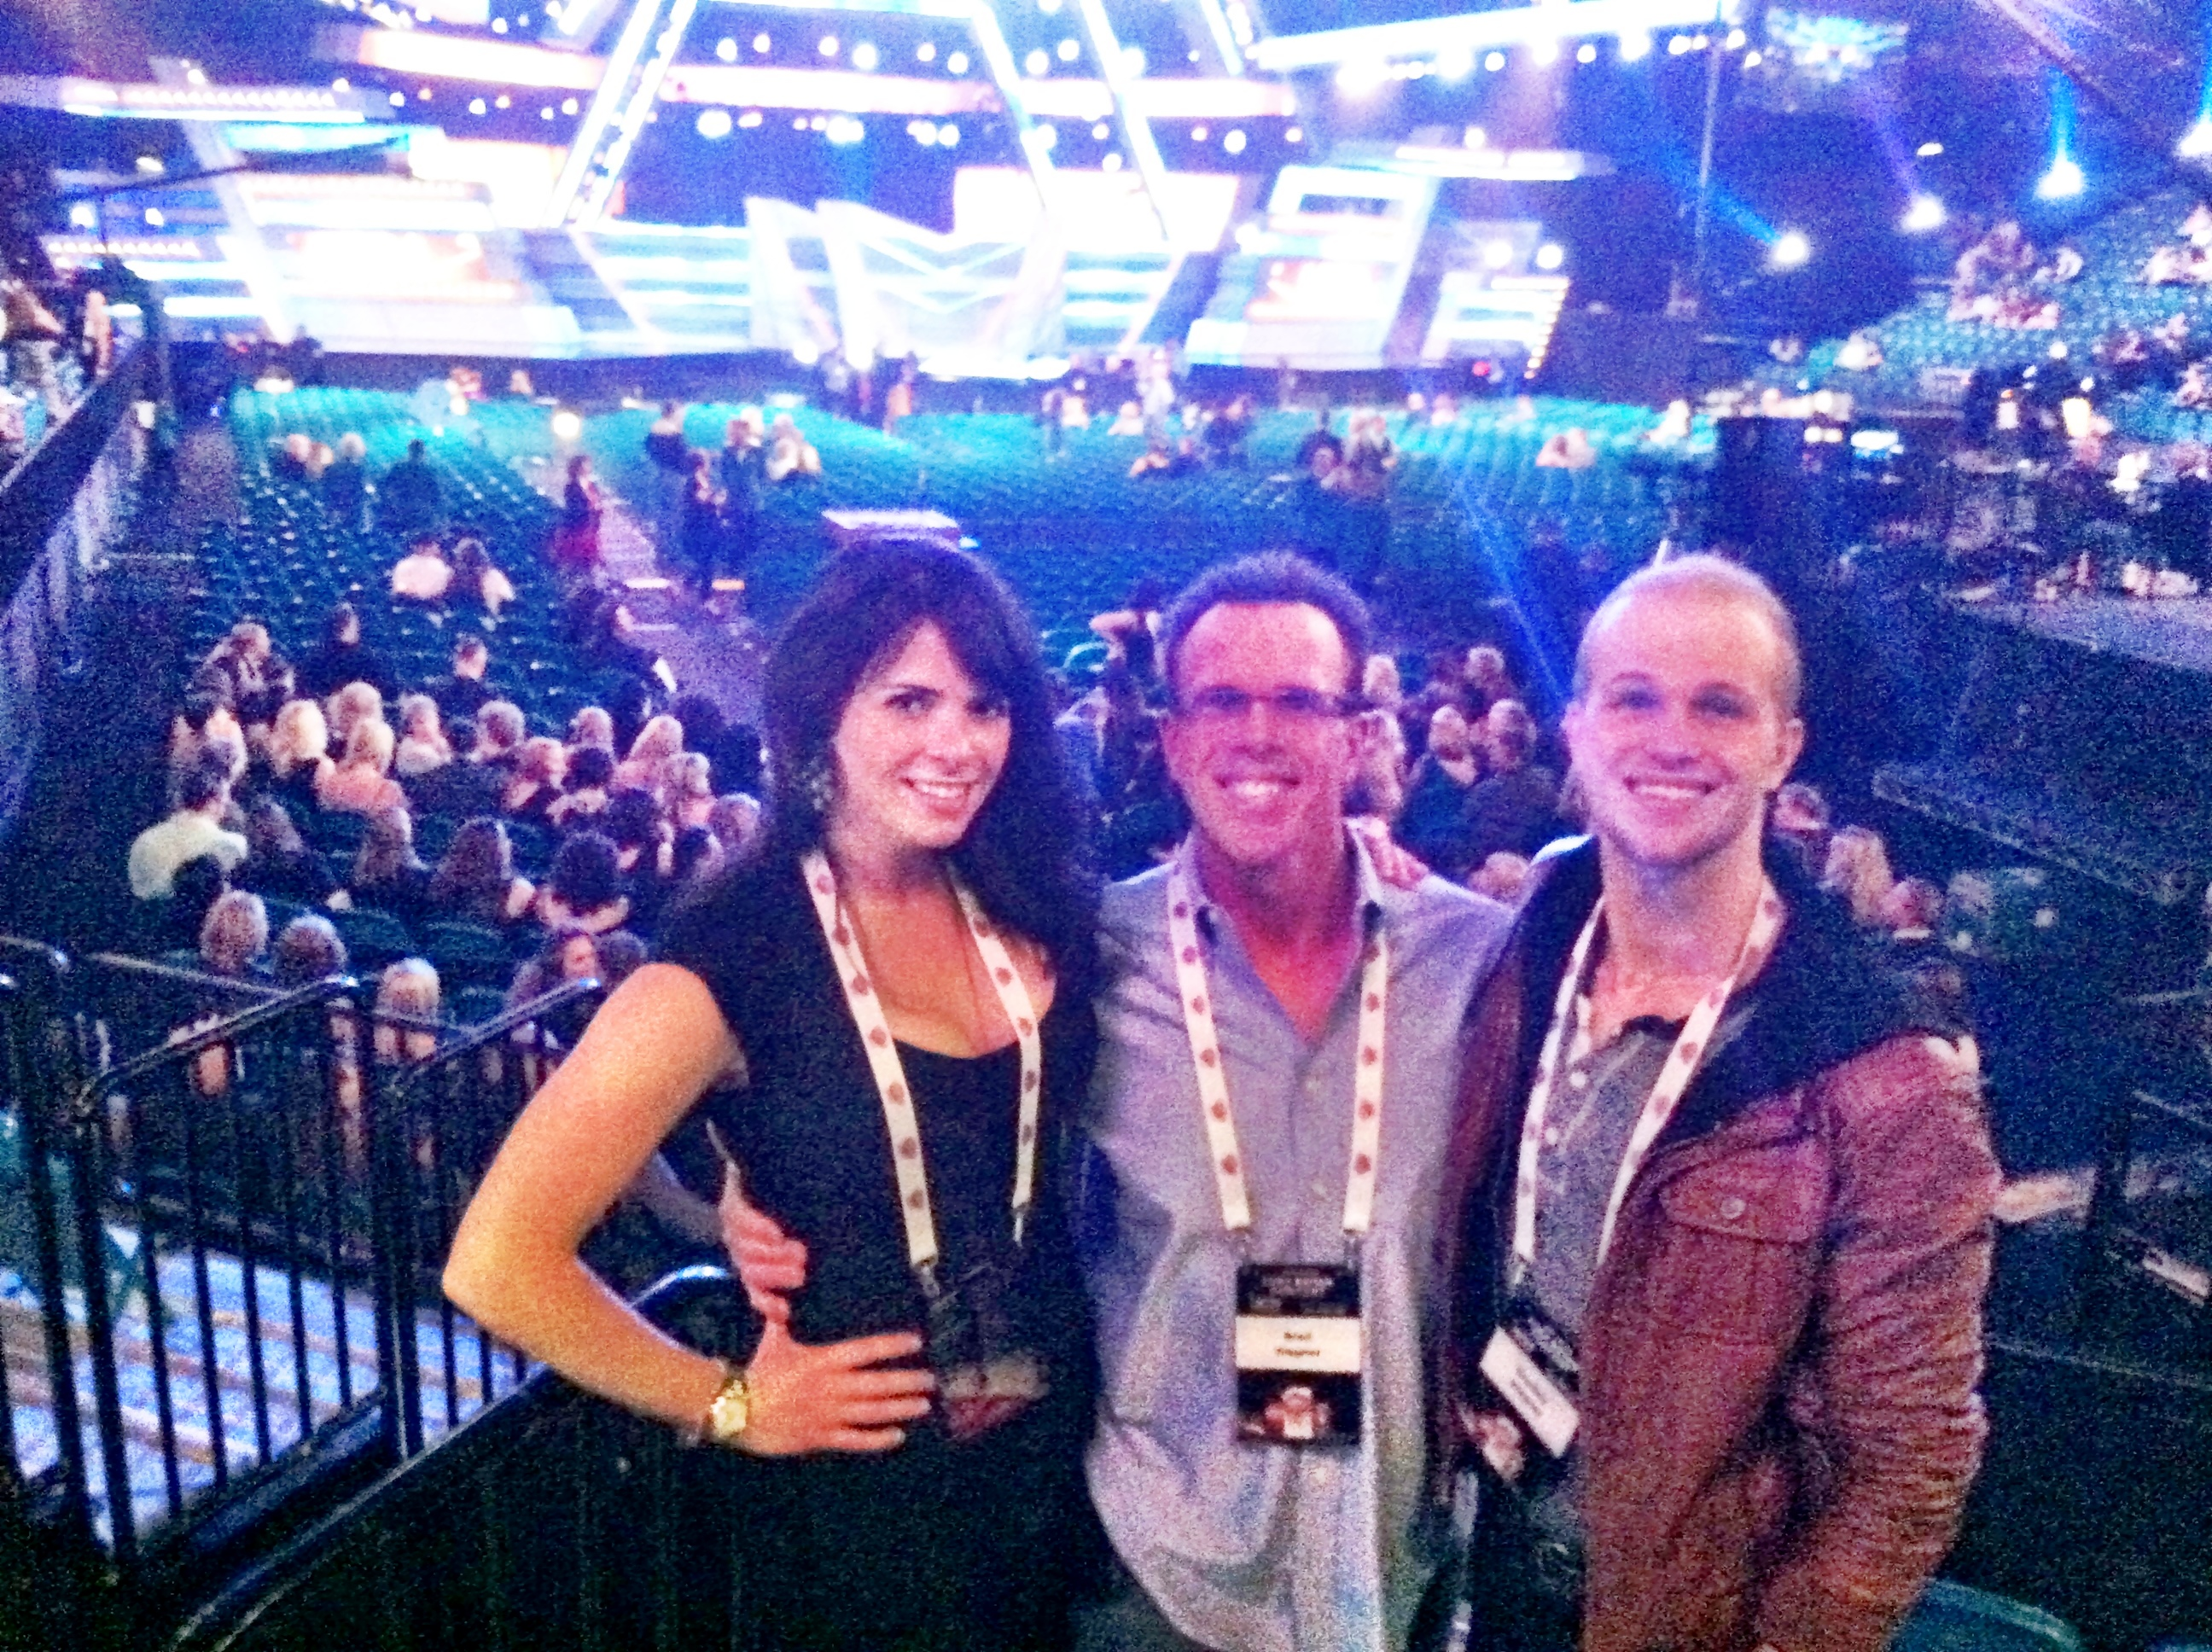 Live from the ACM's!